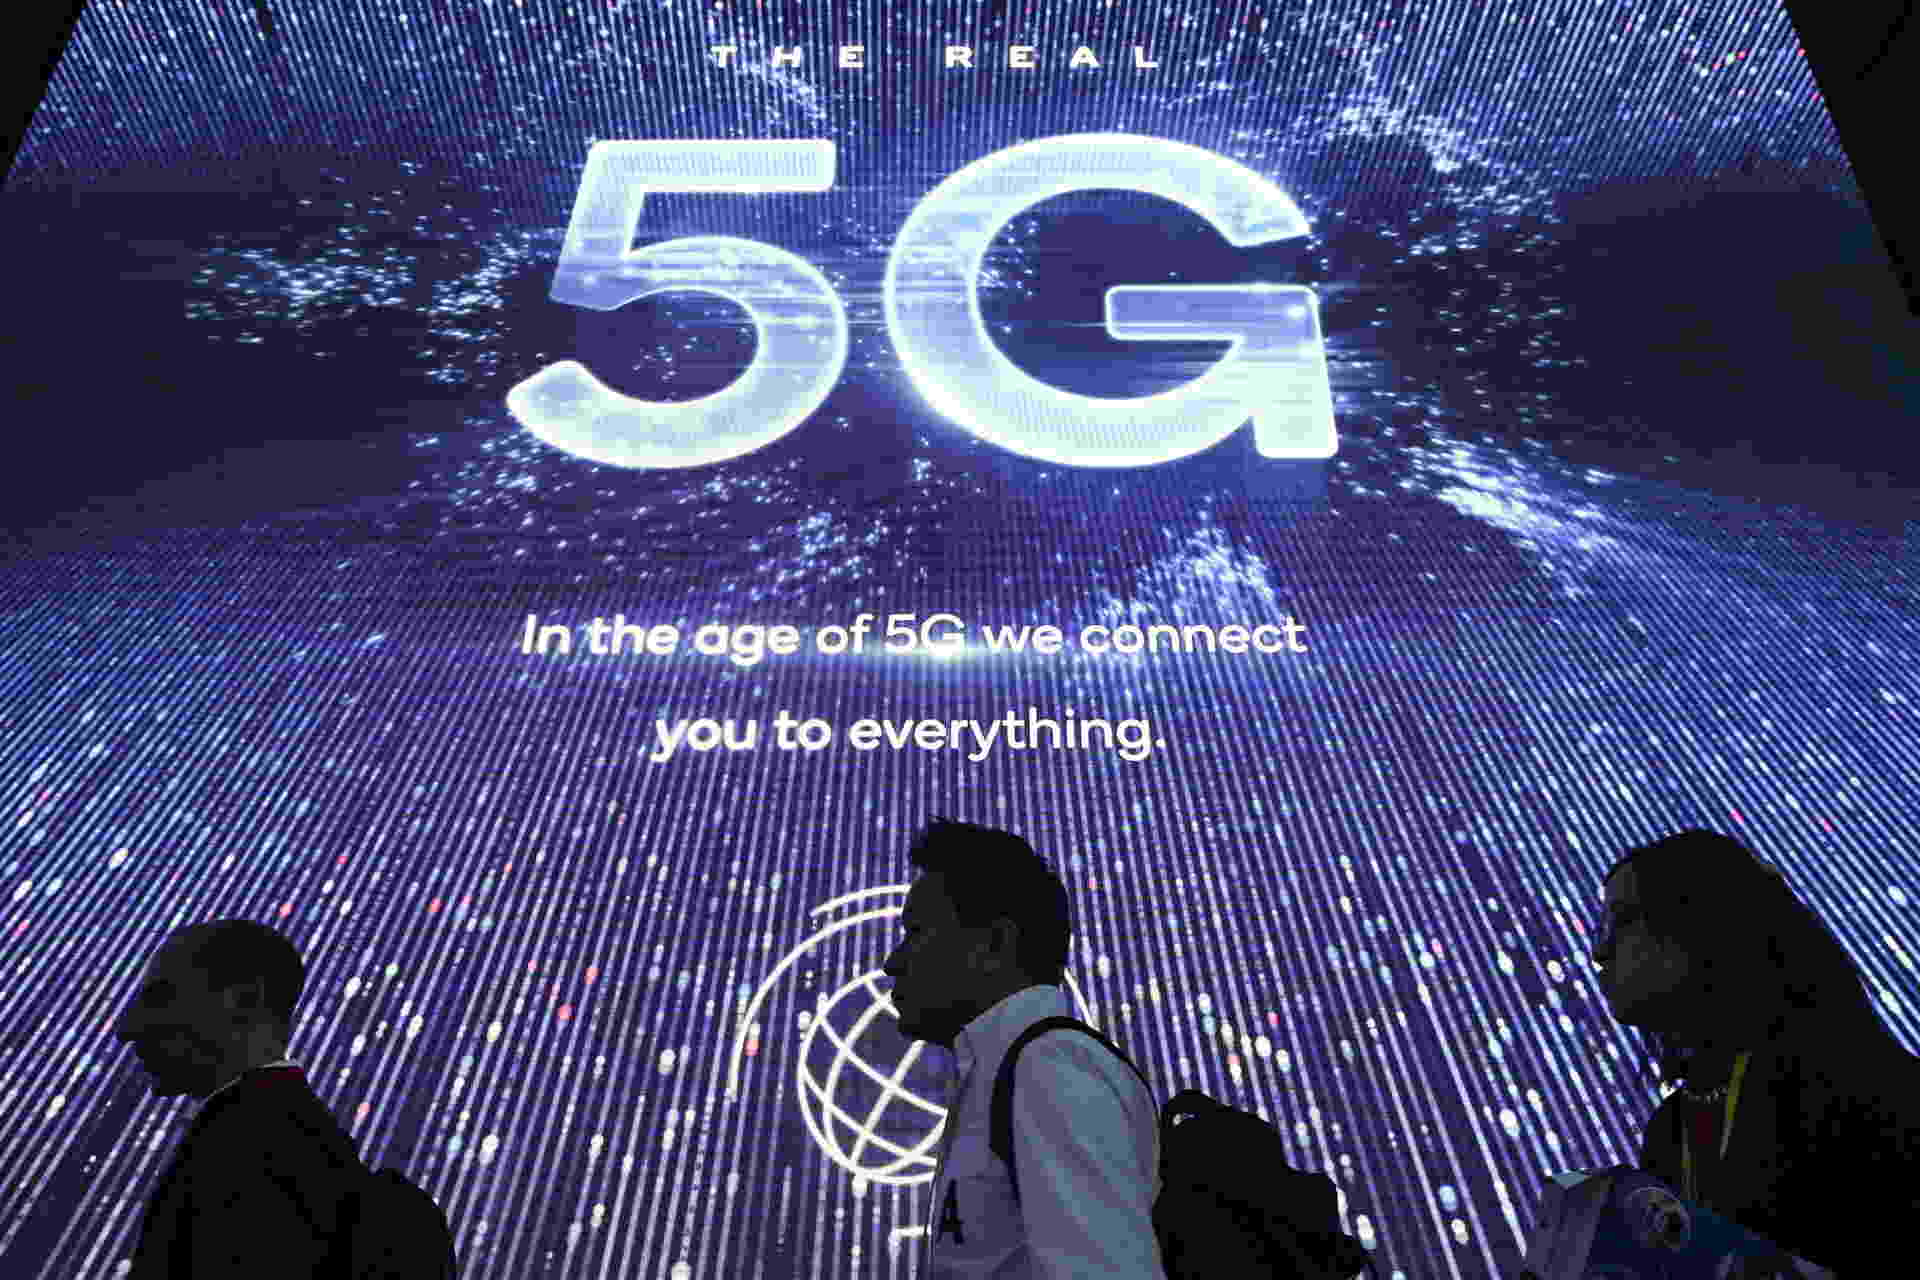 Tin don 5G gay ung thư vi sao lai co.